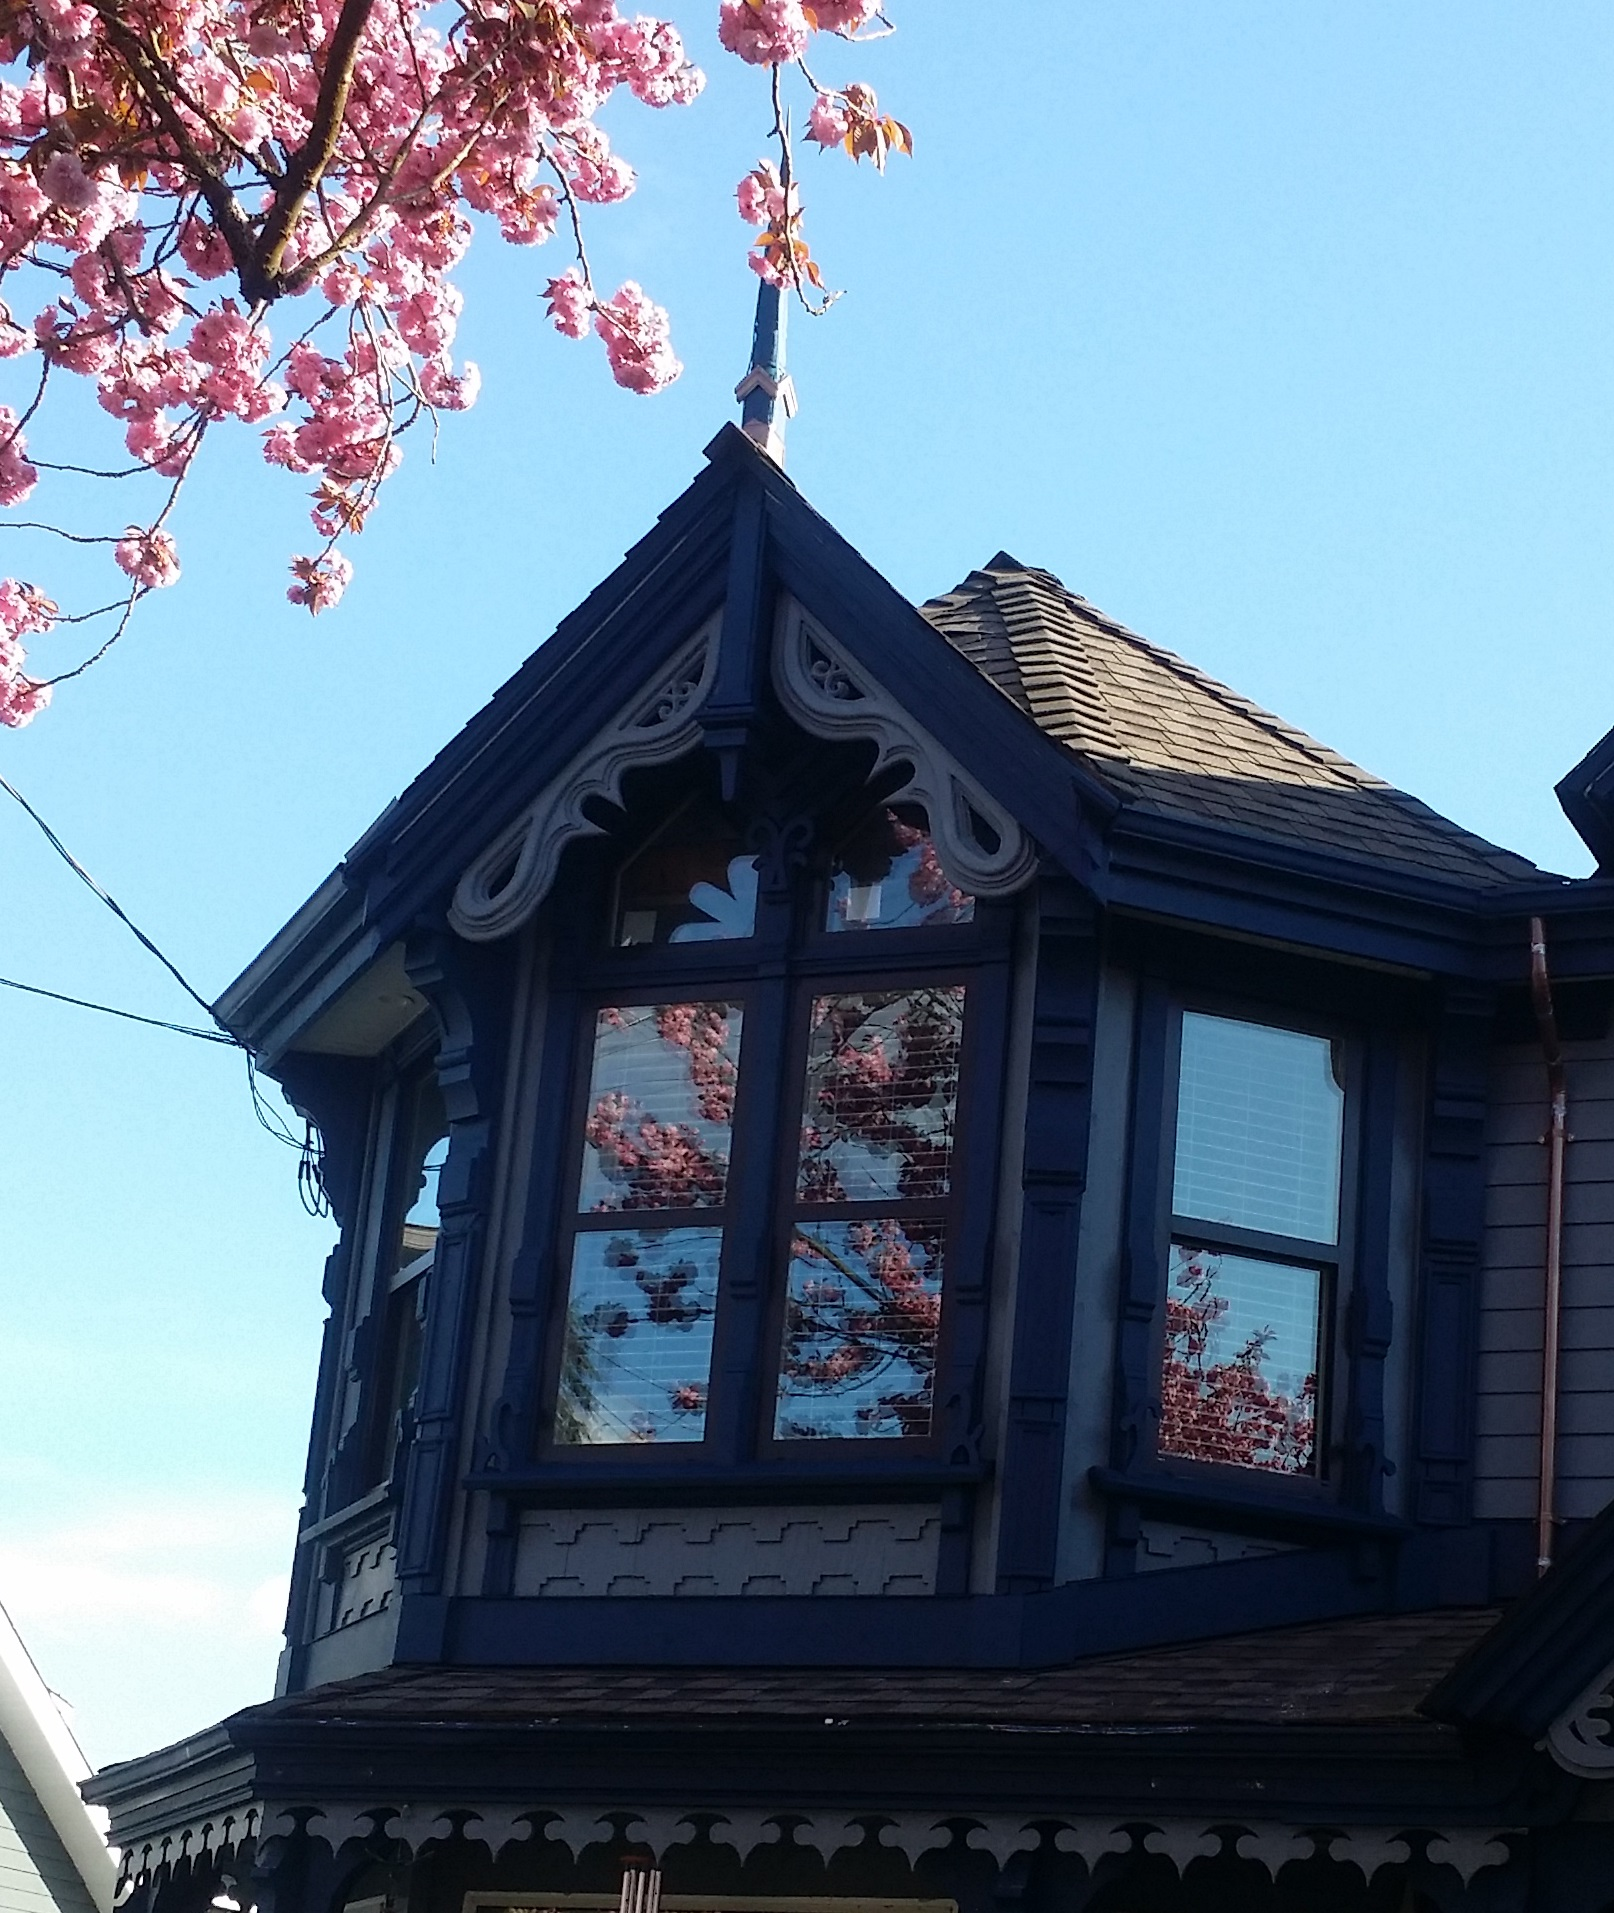 My after work project. Vinyl siding spec house to Victorian Stick Eastlake-20160404_165921a1.jpg